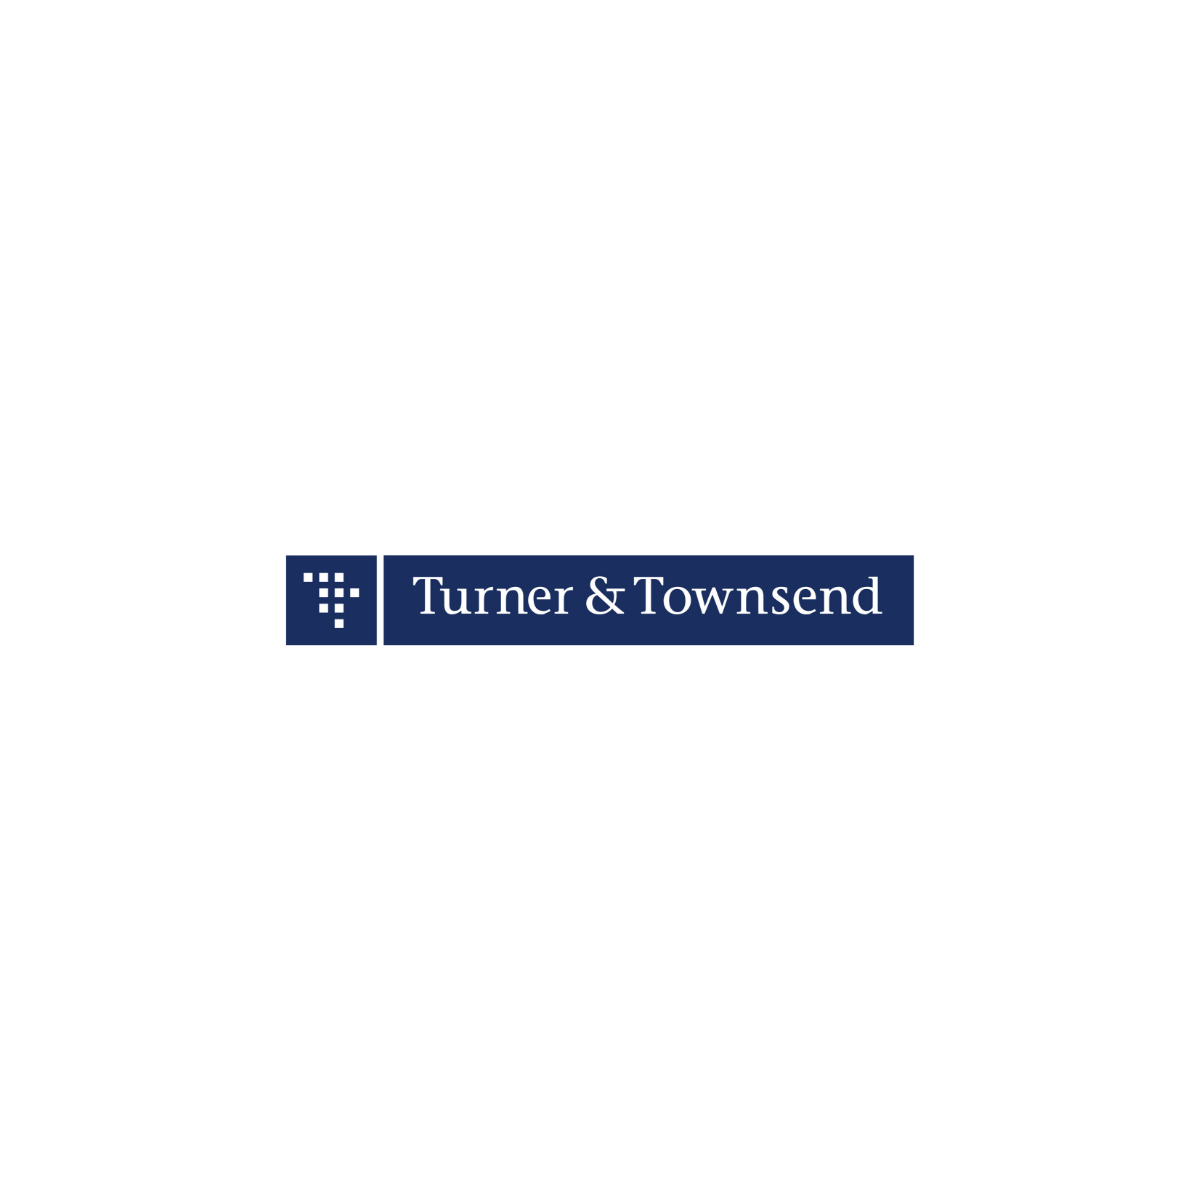 Turner and Townsend logo